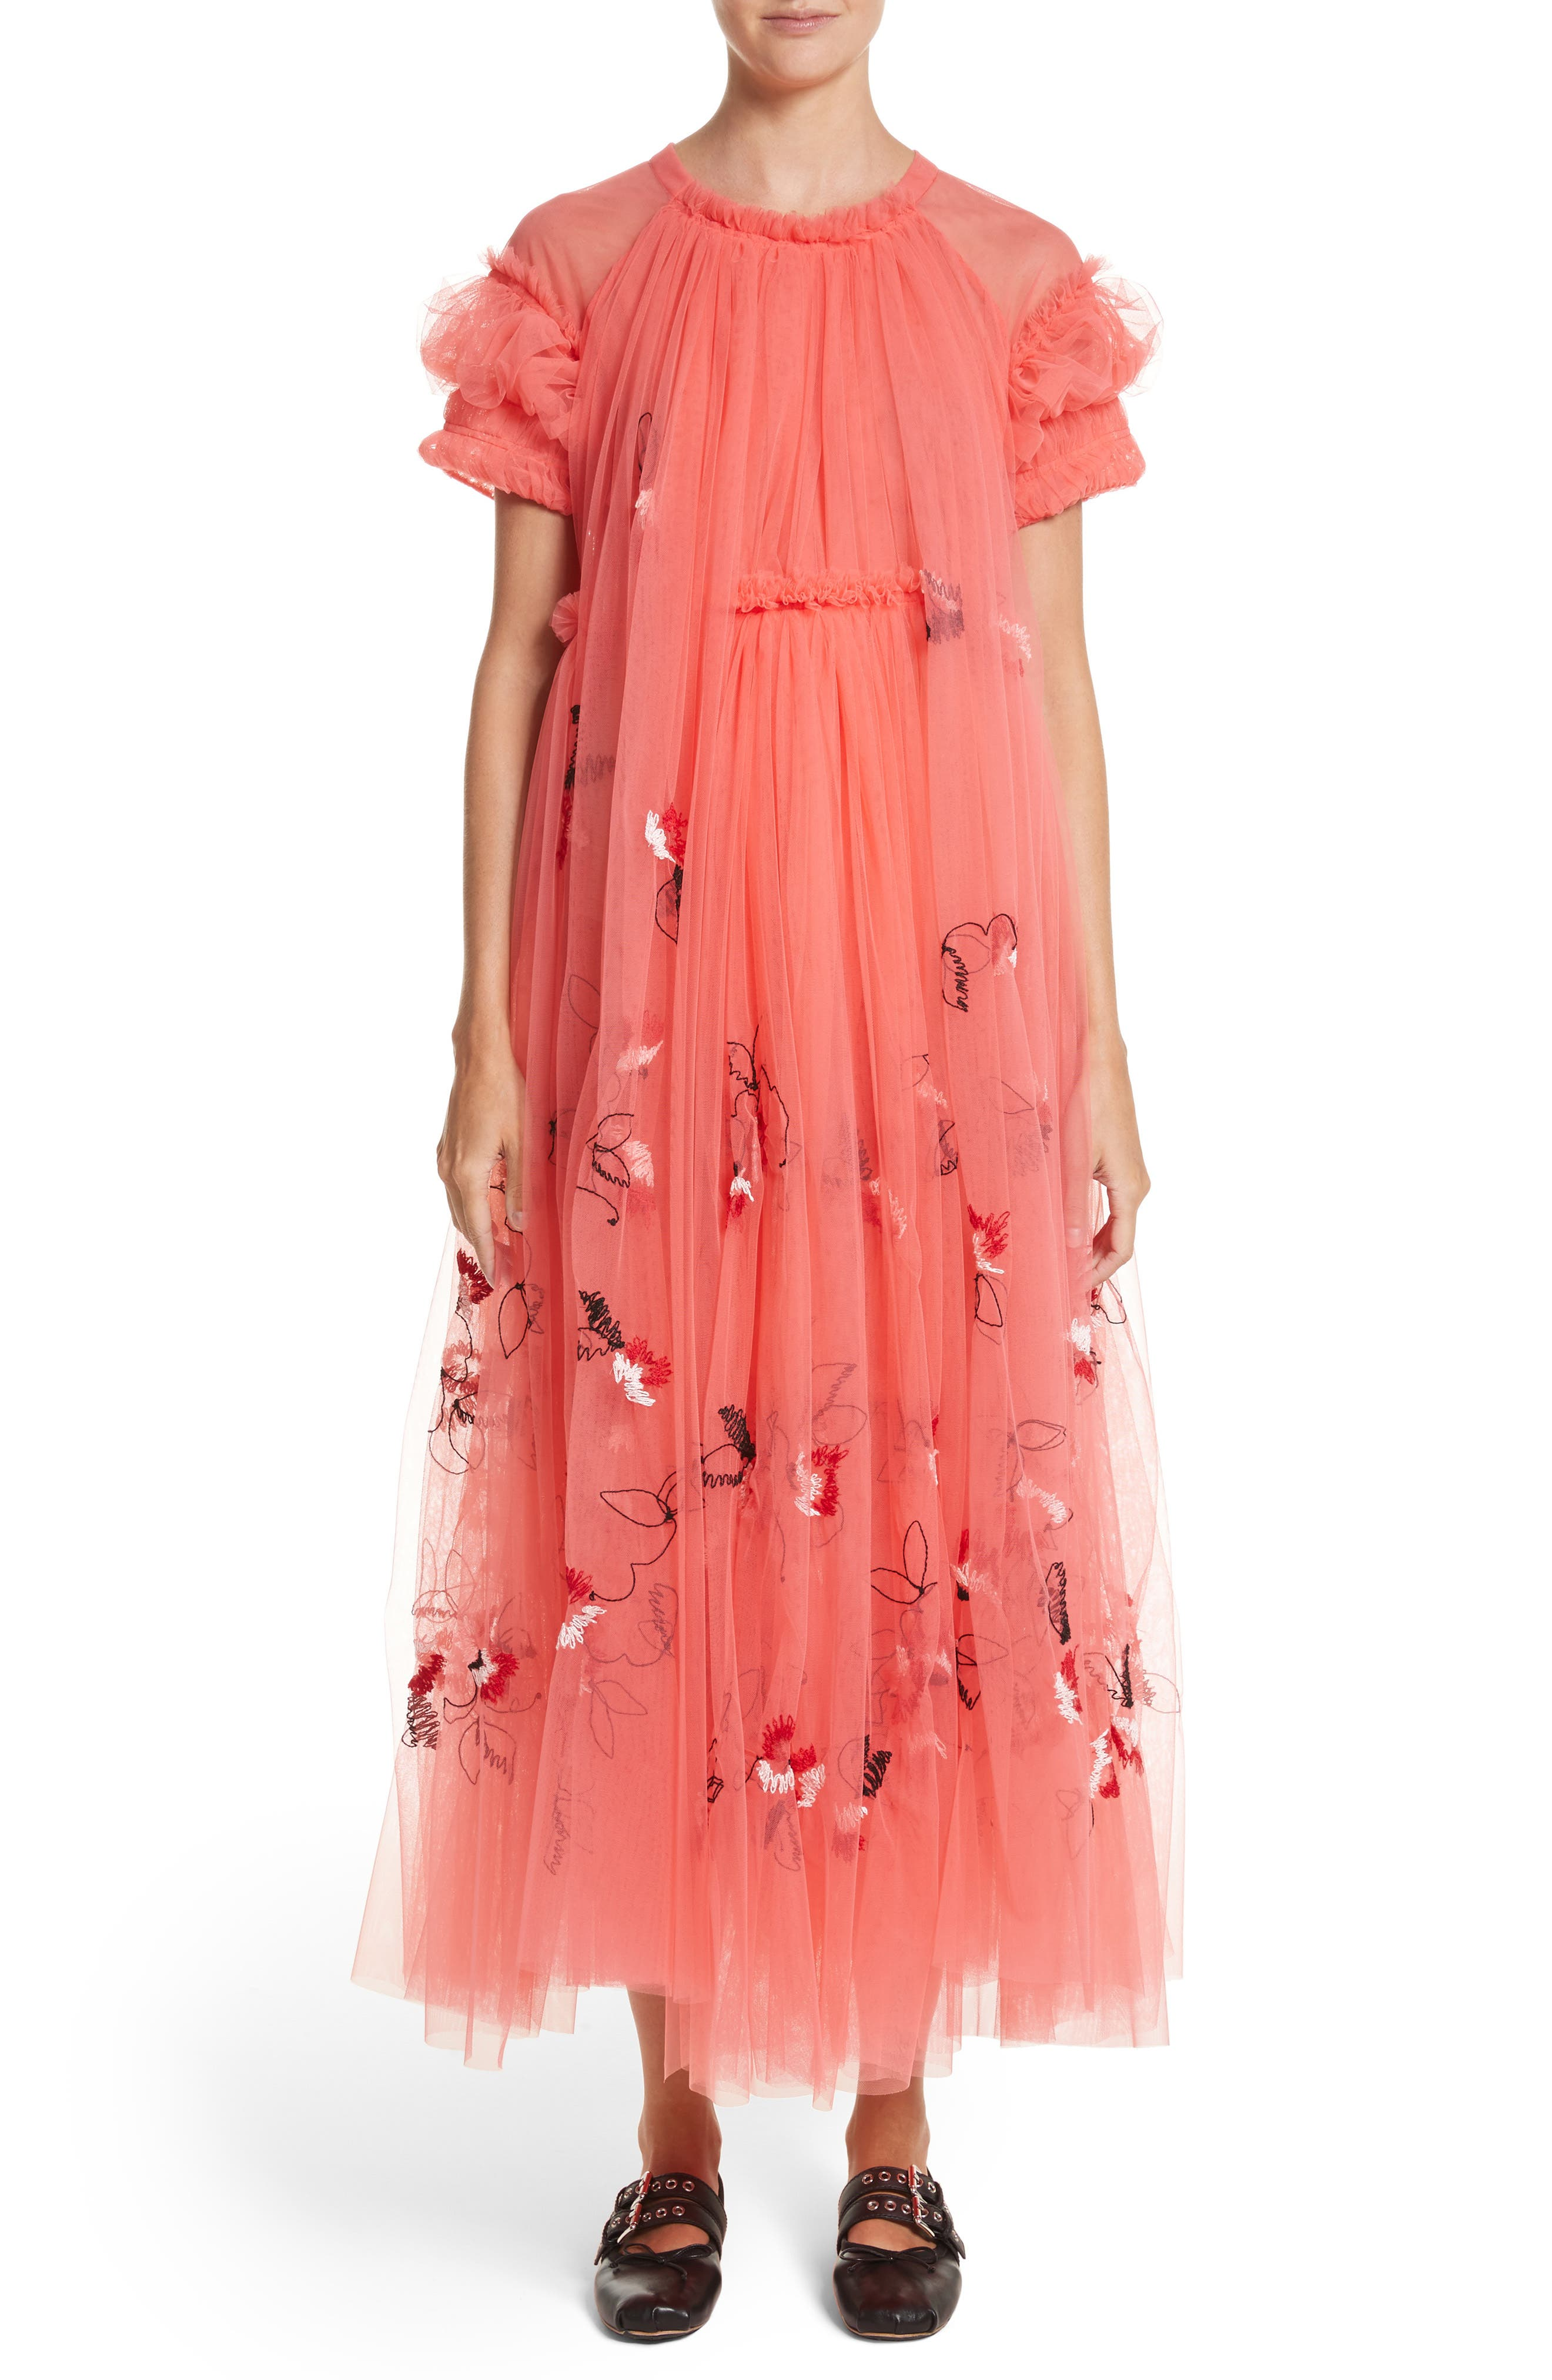 Molly Goddard Doris Embroidered Tulle Dress